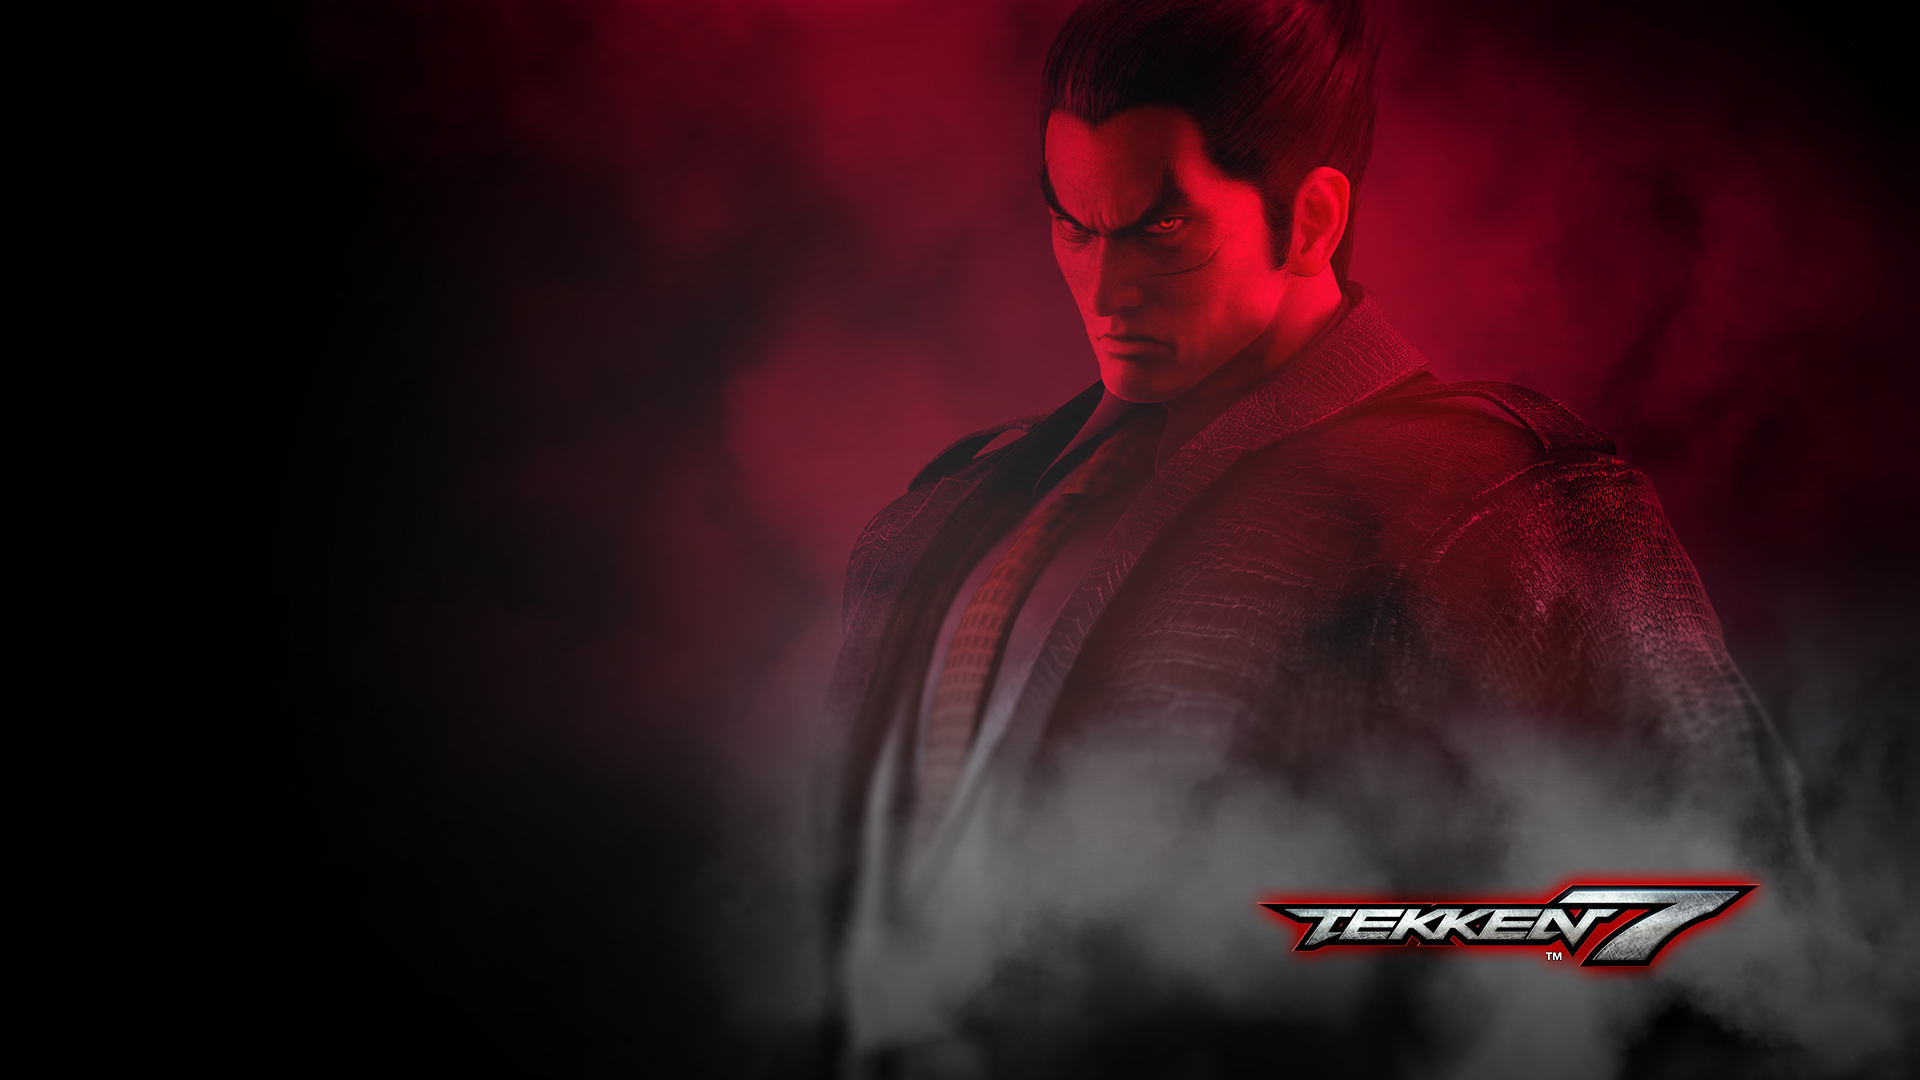 Tekken 7 Paul Hd Wallpaper Download Trosraigo9 Kansas